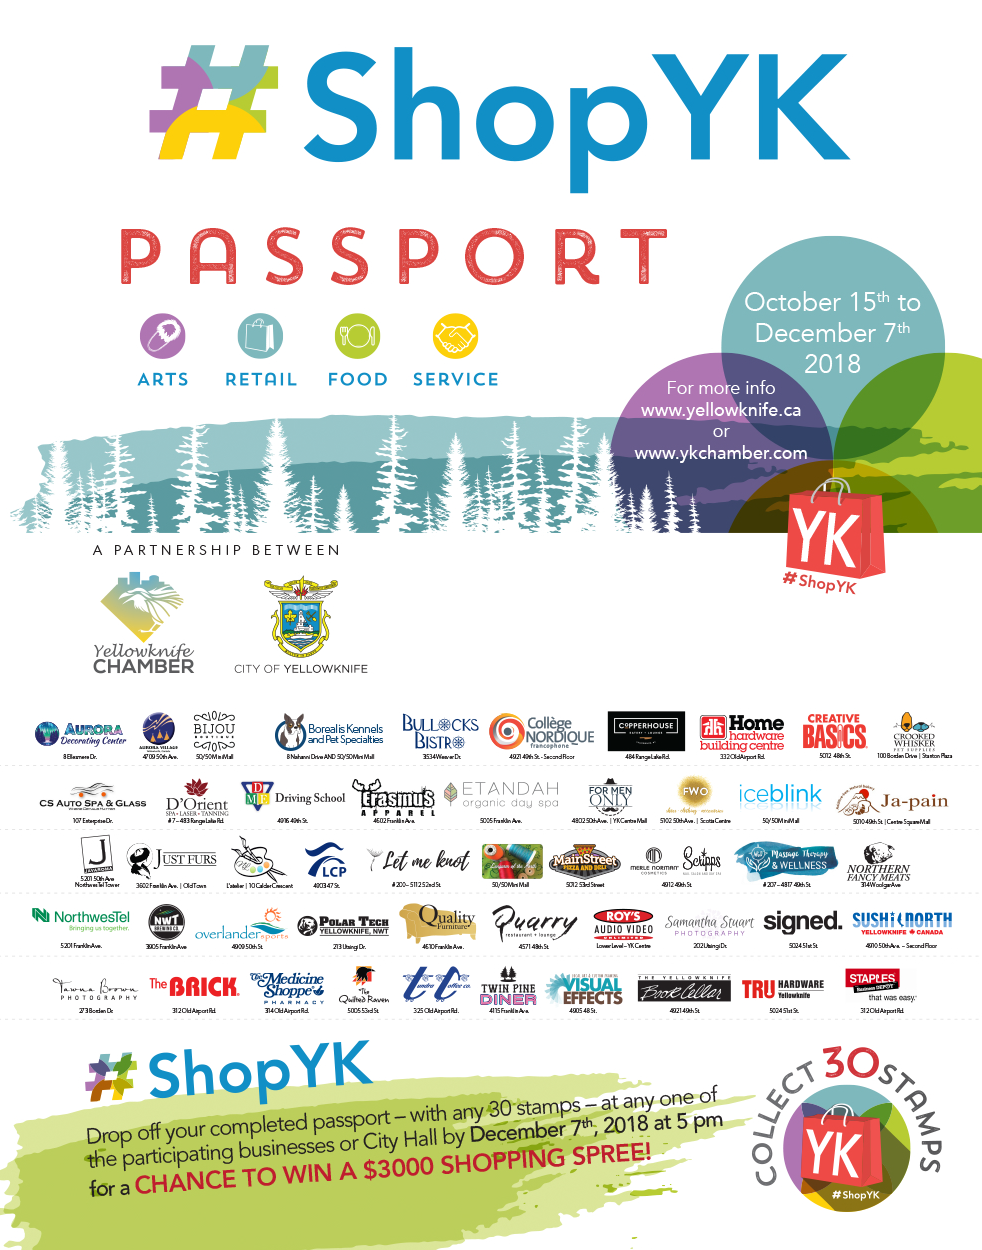 shopyk---participating-businesses-social-media-graphic.png